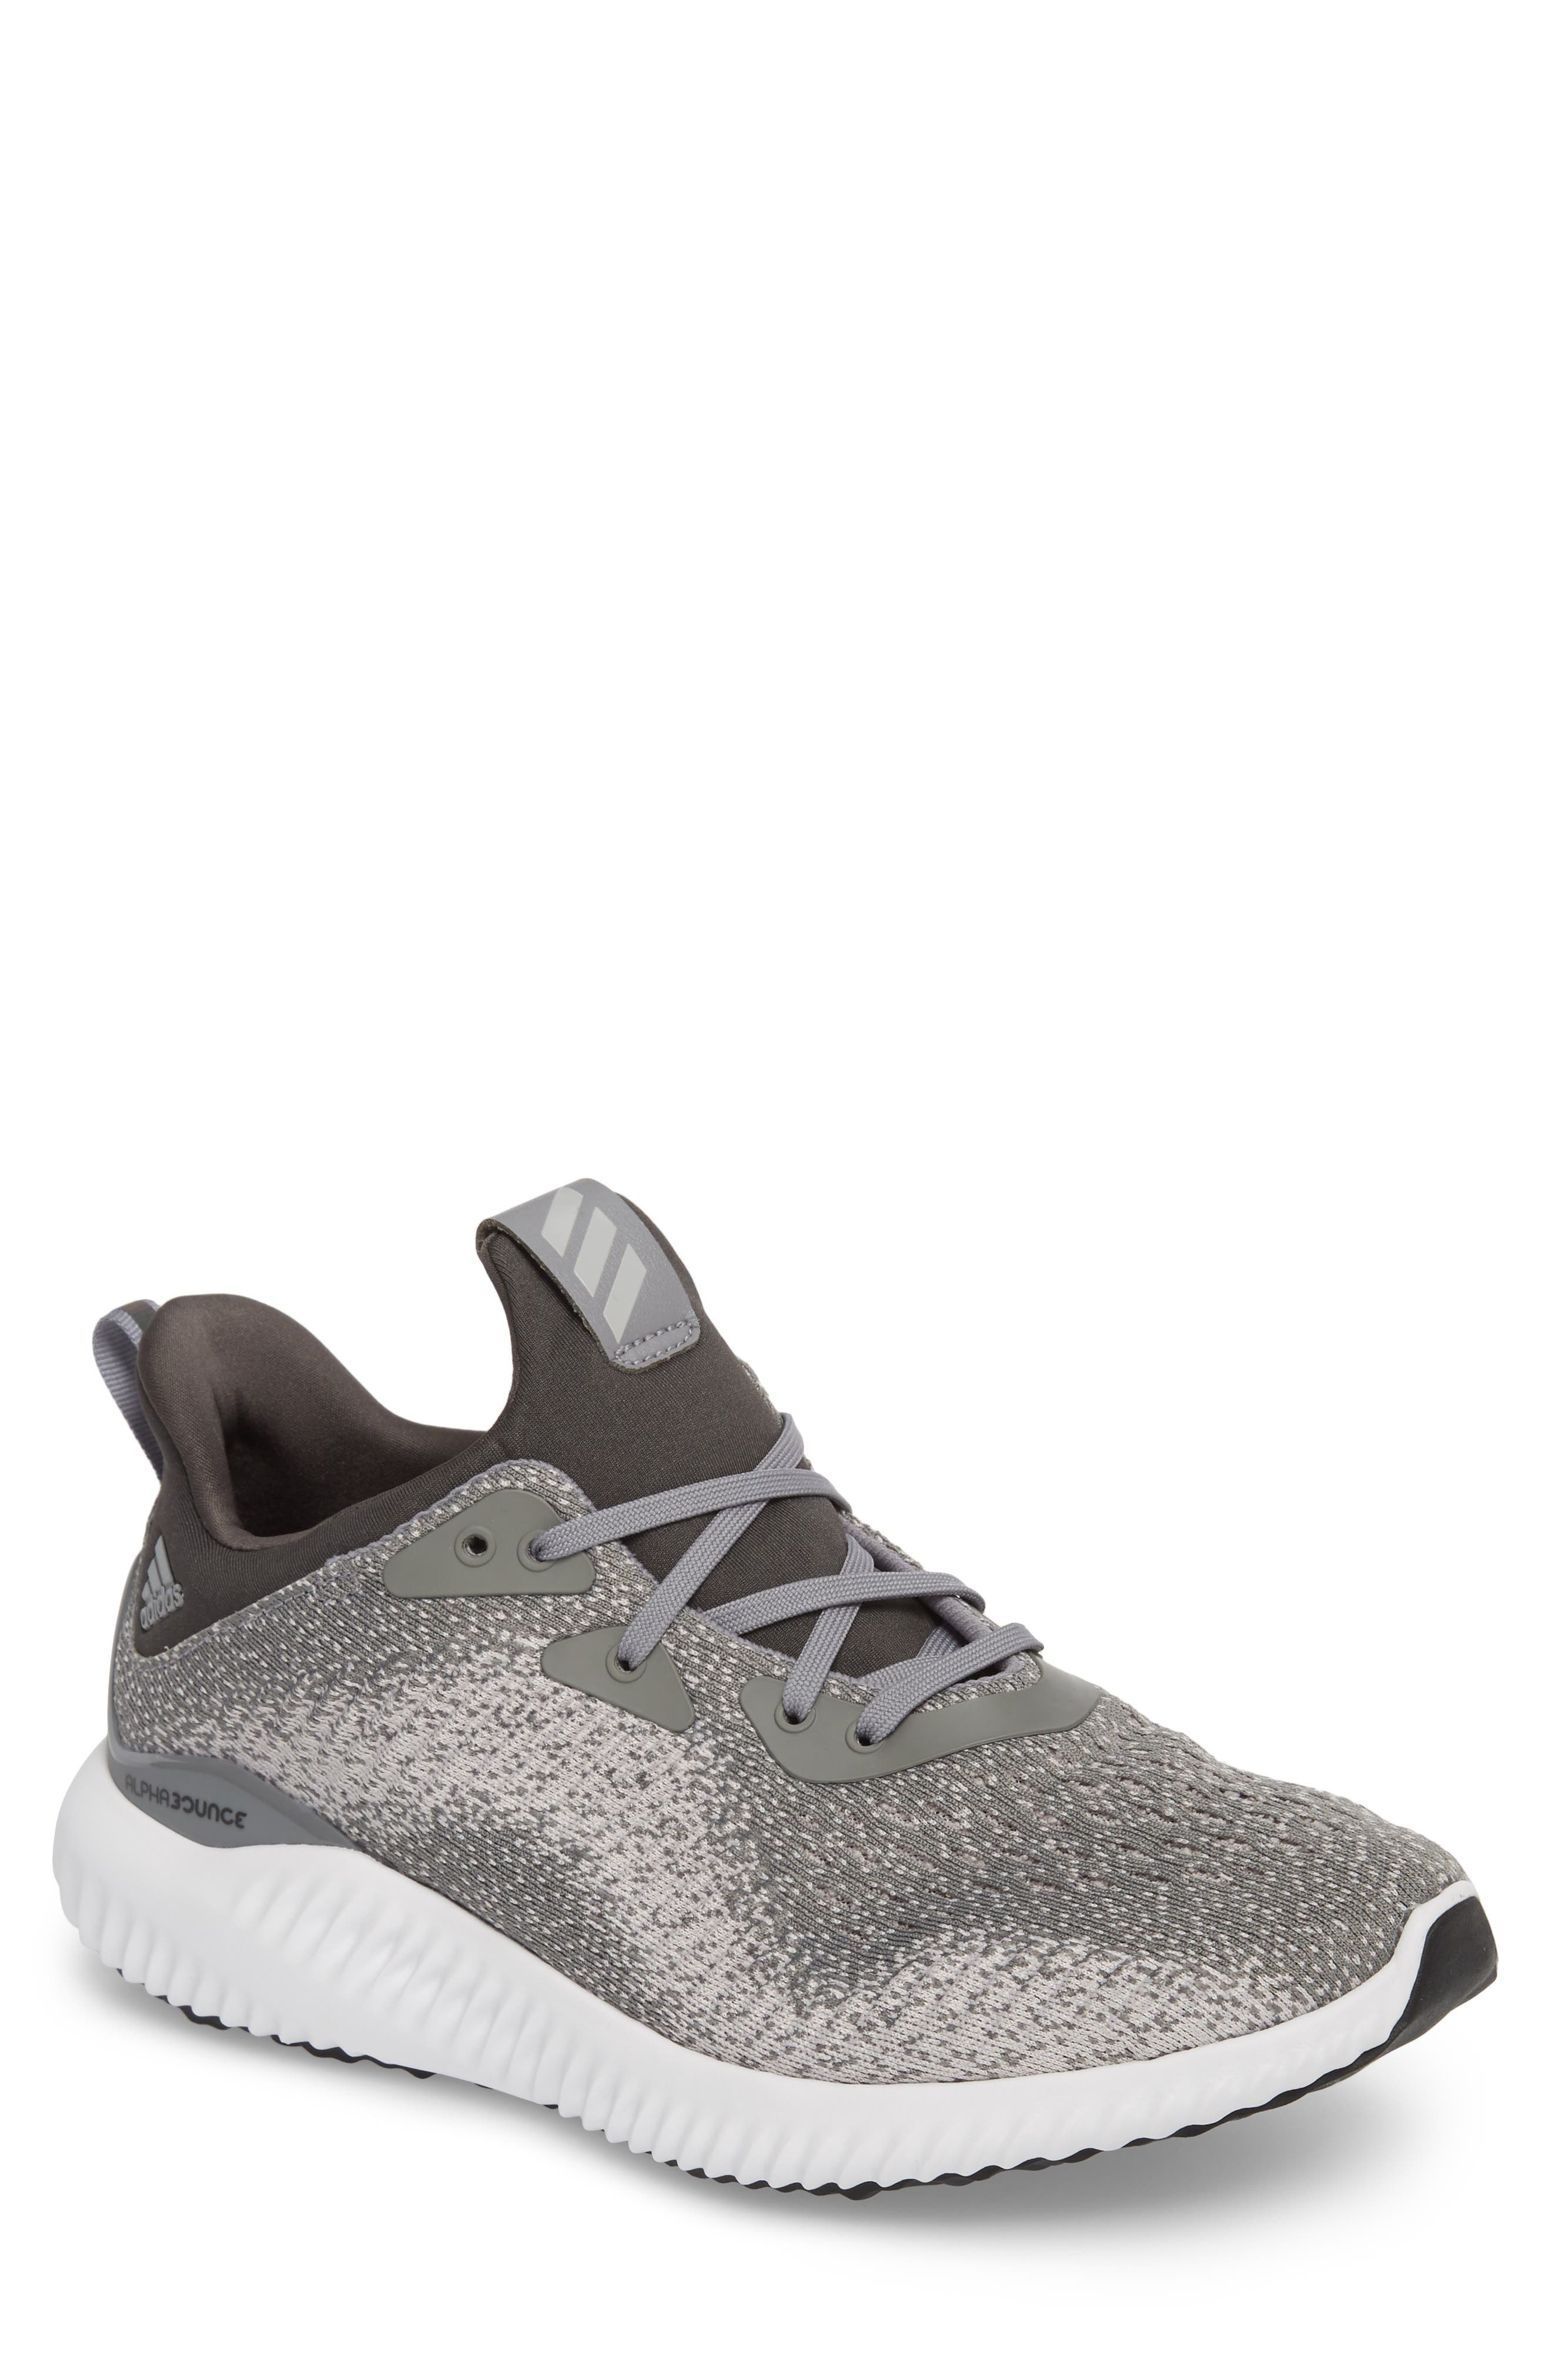 Main Image - adidas AlphaBounce EM Sock Fit Running Shoe (Men)